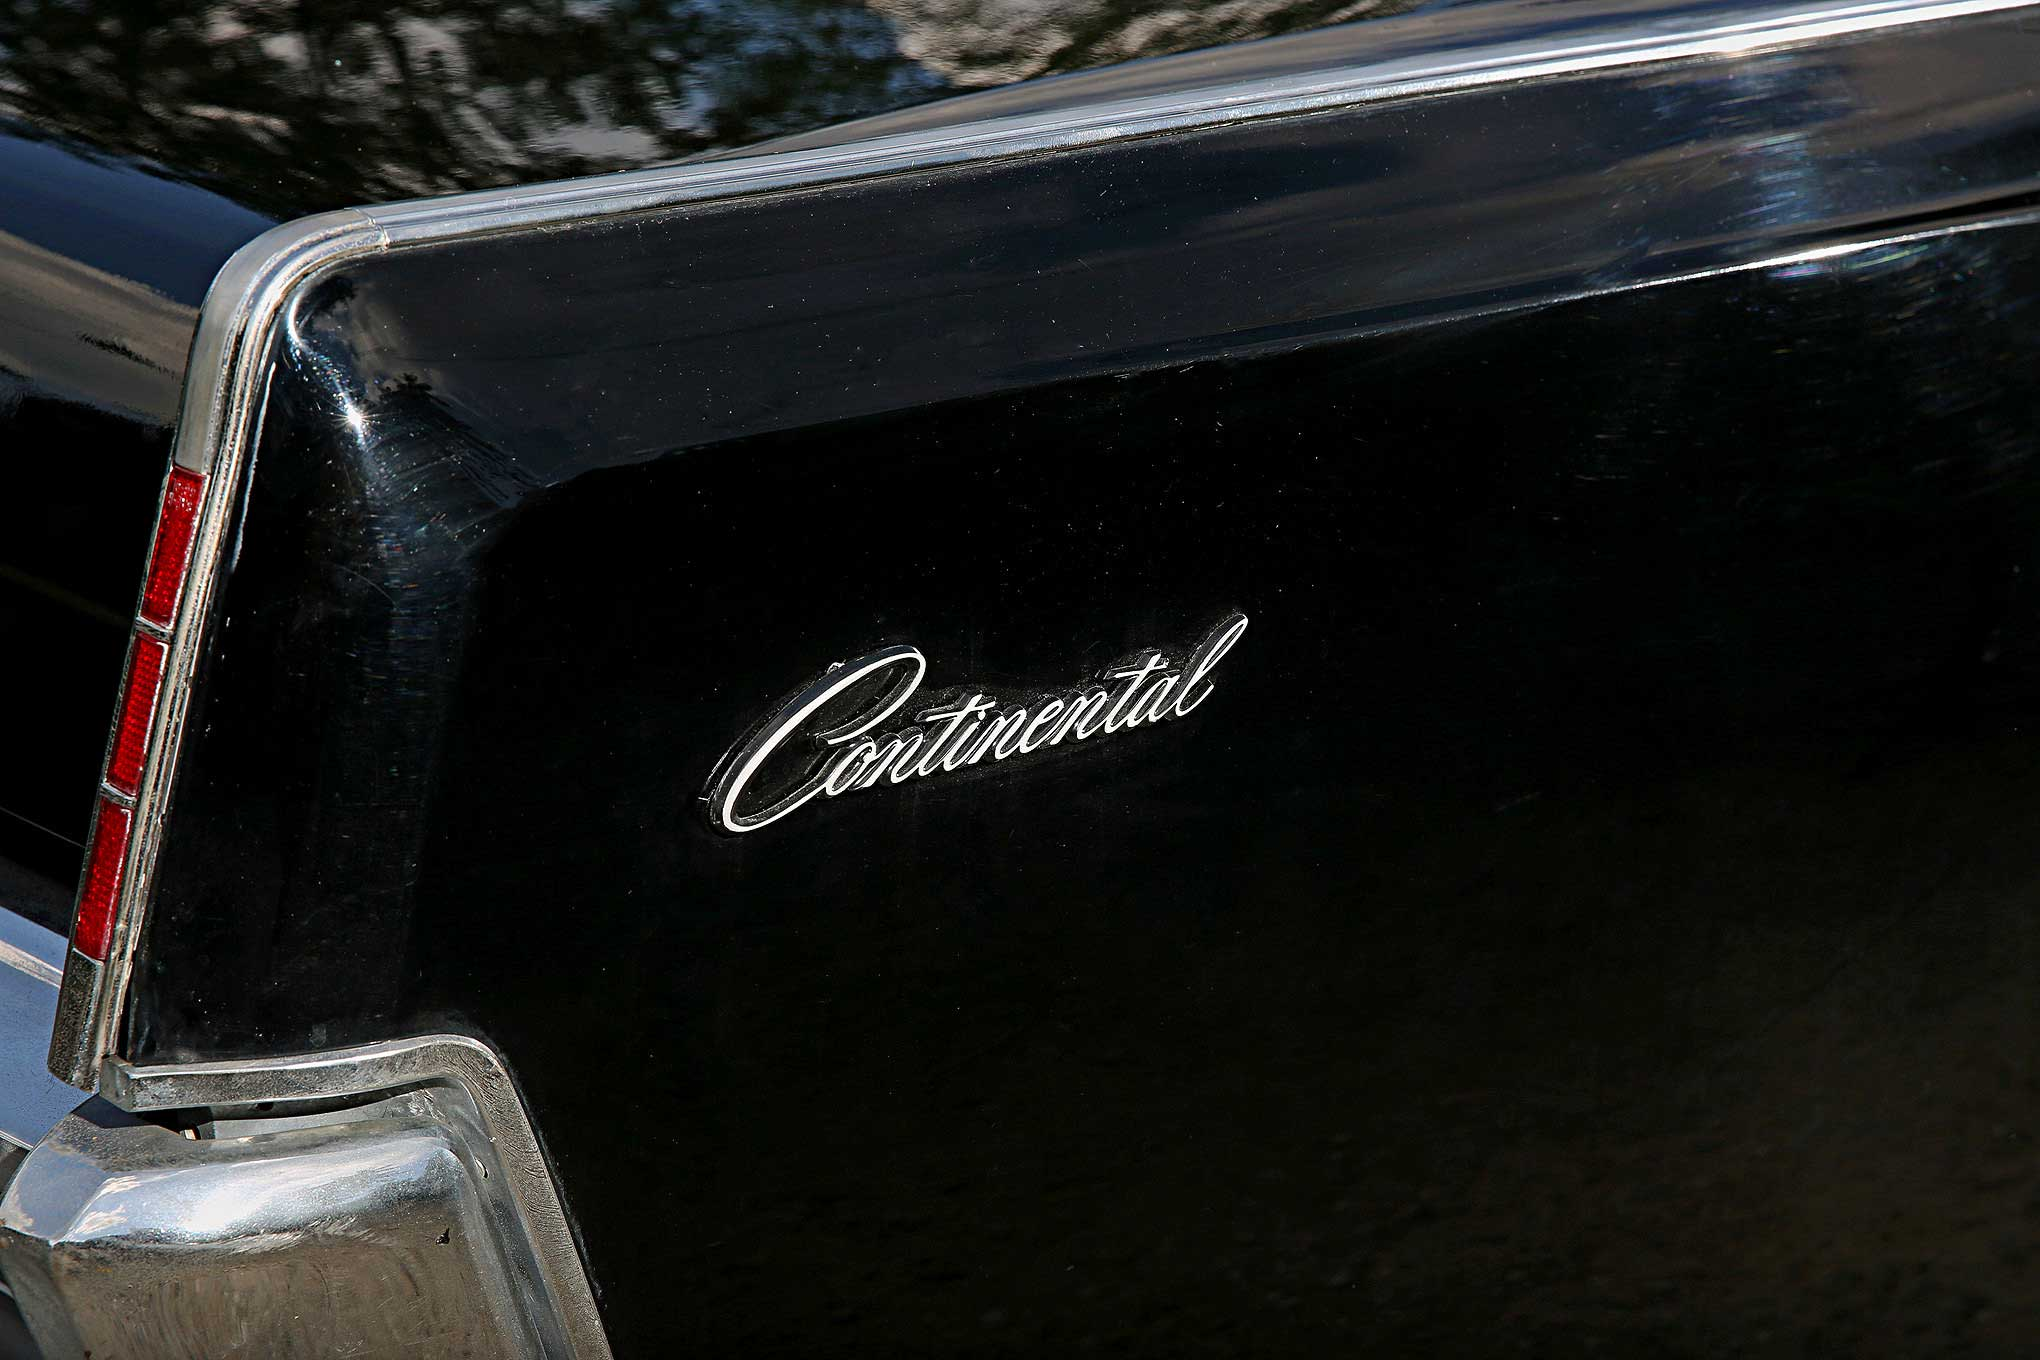 1966 lincoln continental convertible quarter panel emblem lowrider. Black Bedroom Furniture Sets. Home Design Ideas